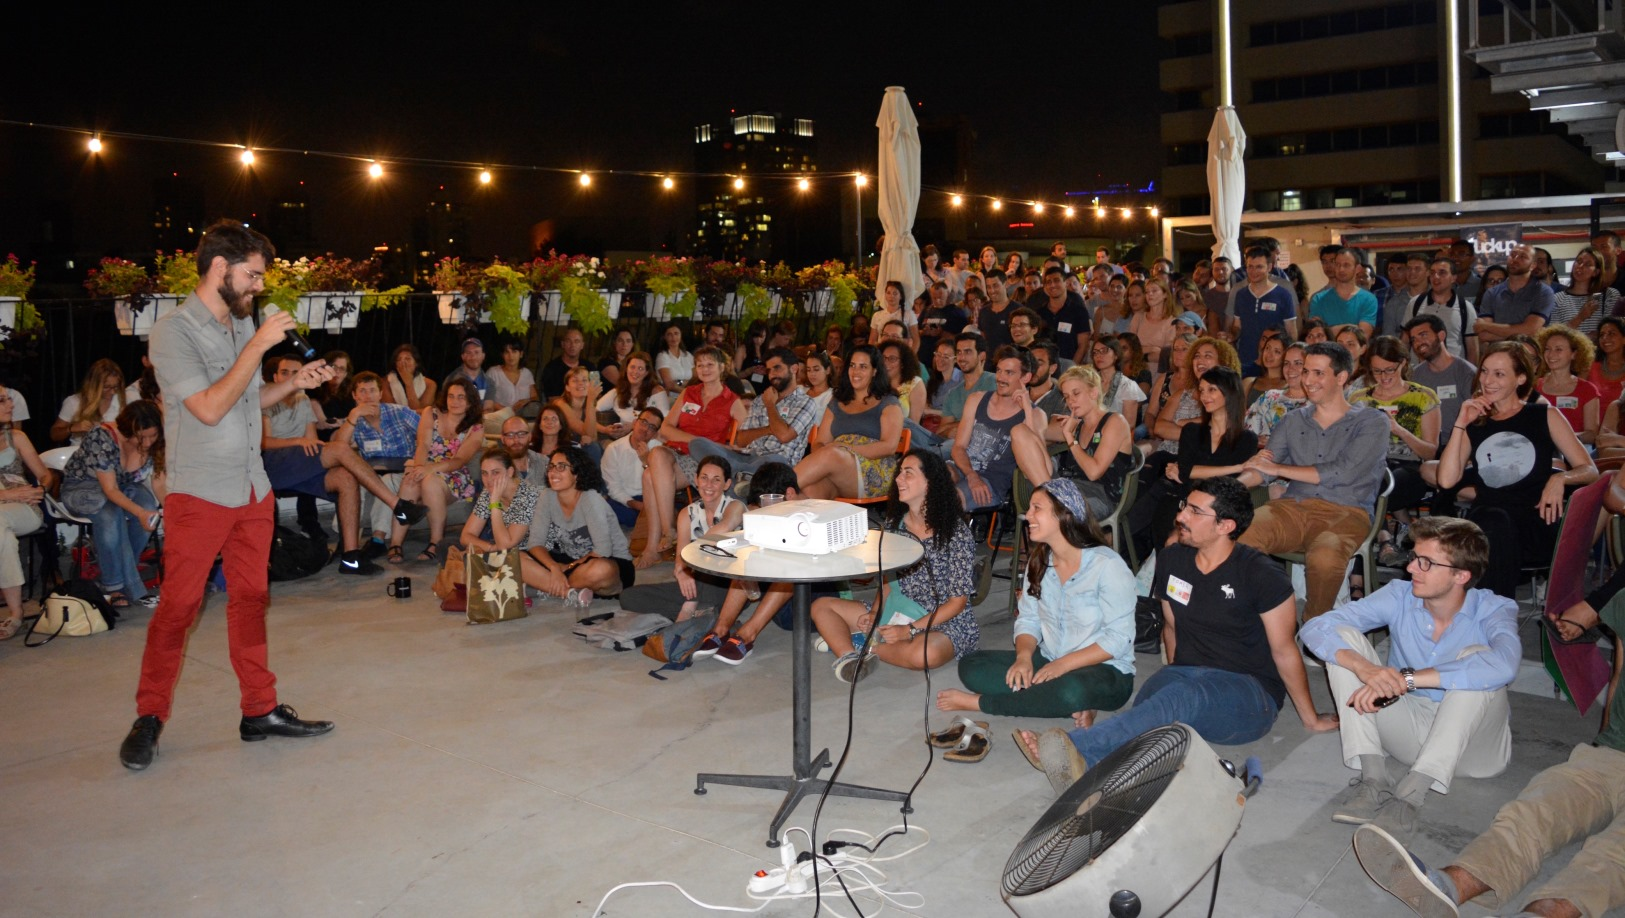 Roy Povarchik, a Tel Aviv growth consultant for startups, speaking at F***up Nights Tel Aviv. Photo courtesy of FUN Tel Aviv